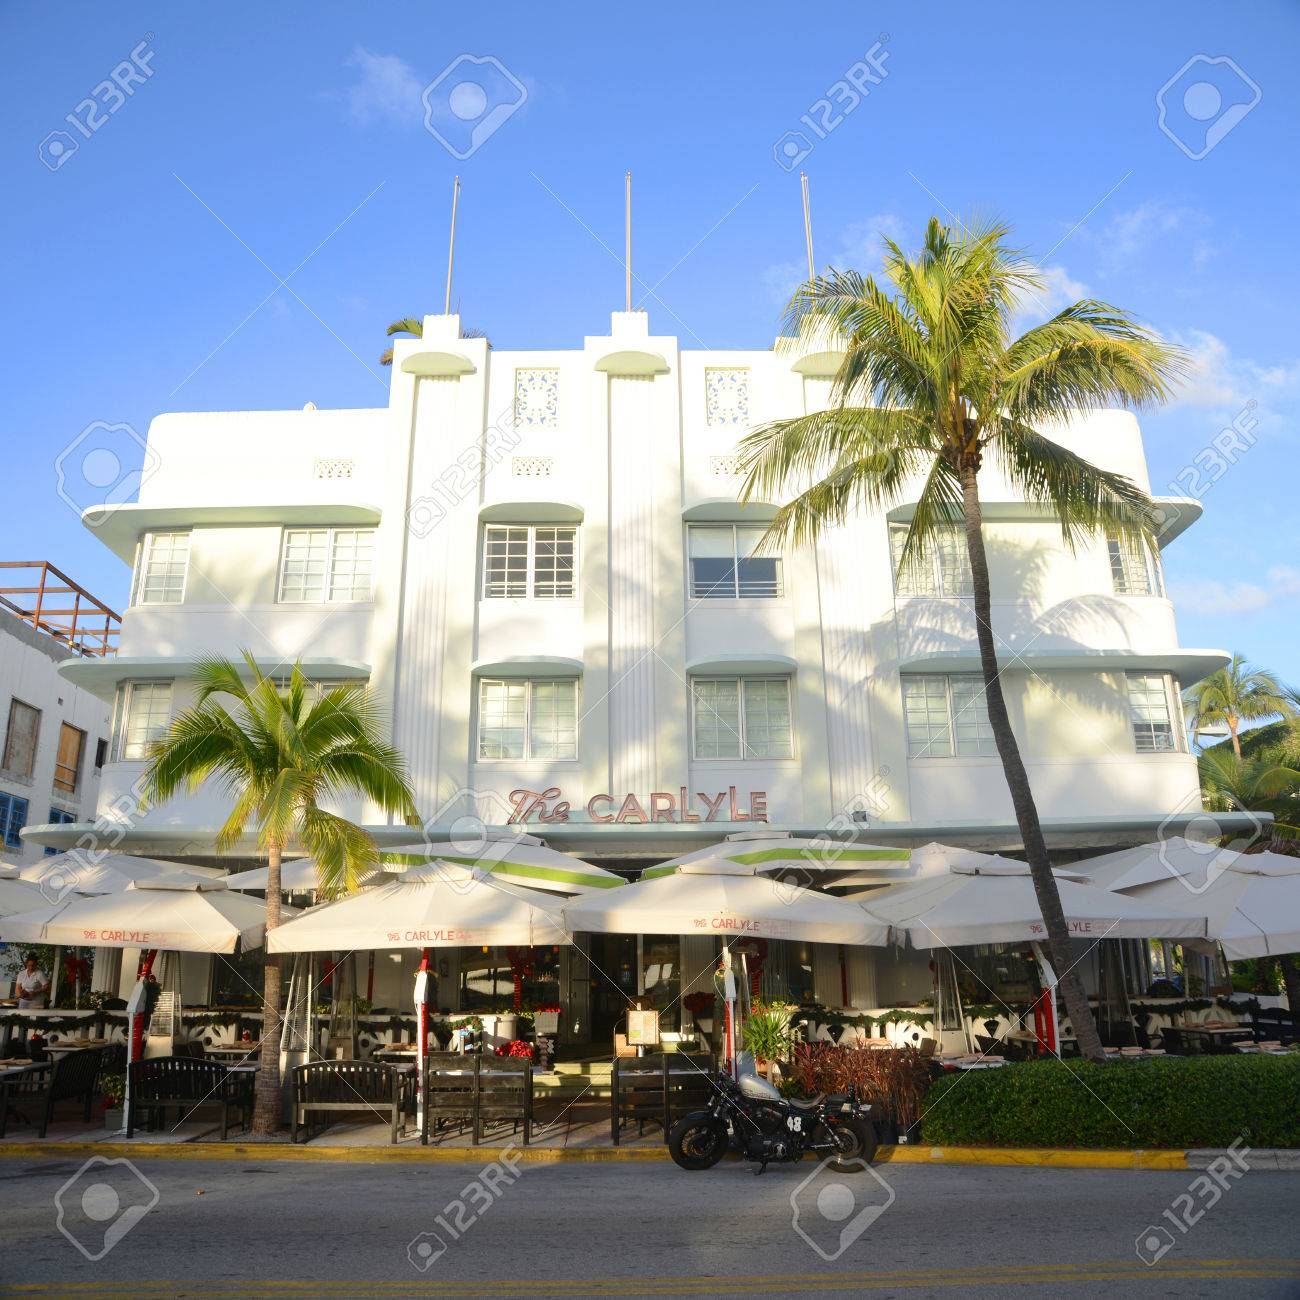 carlyle hotel with art deco style building in miami beach in stock